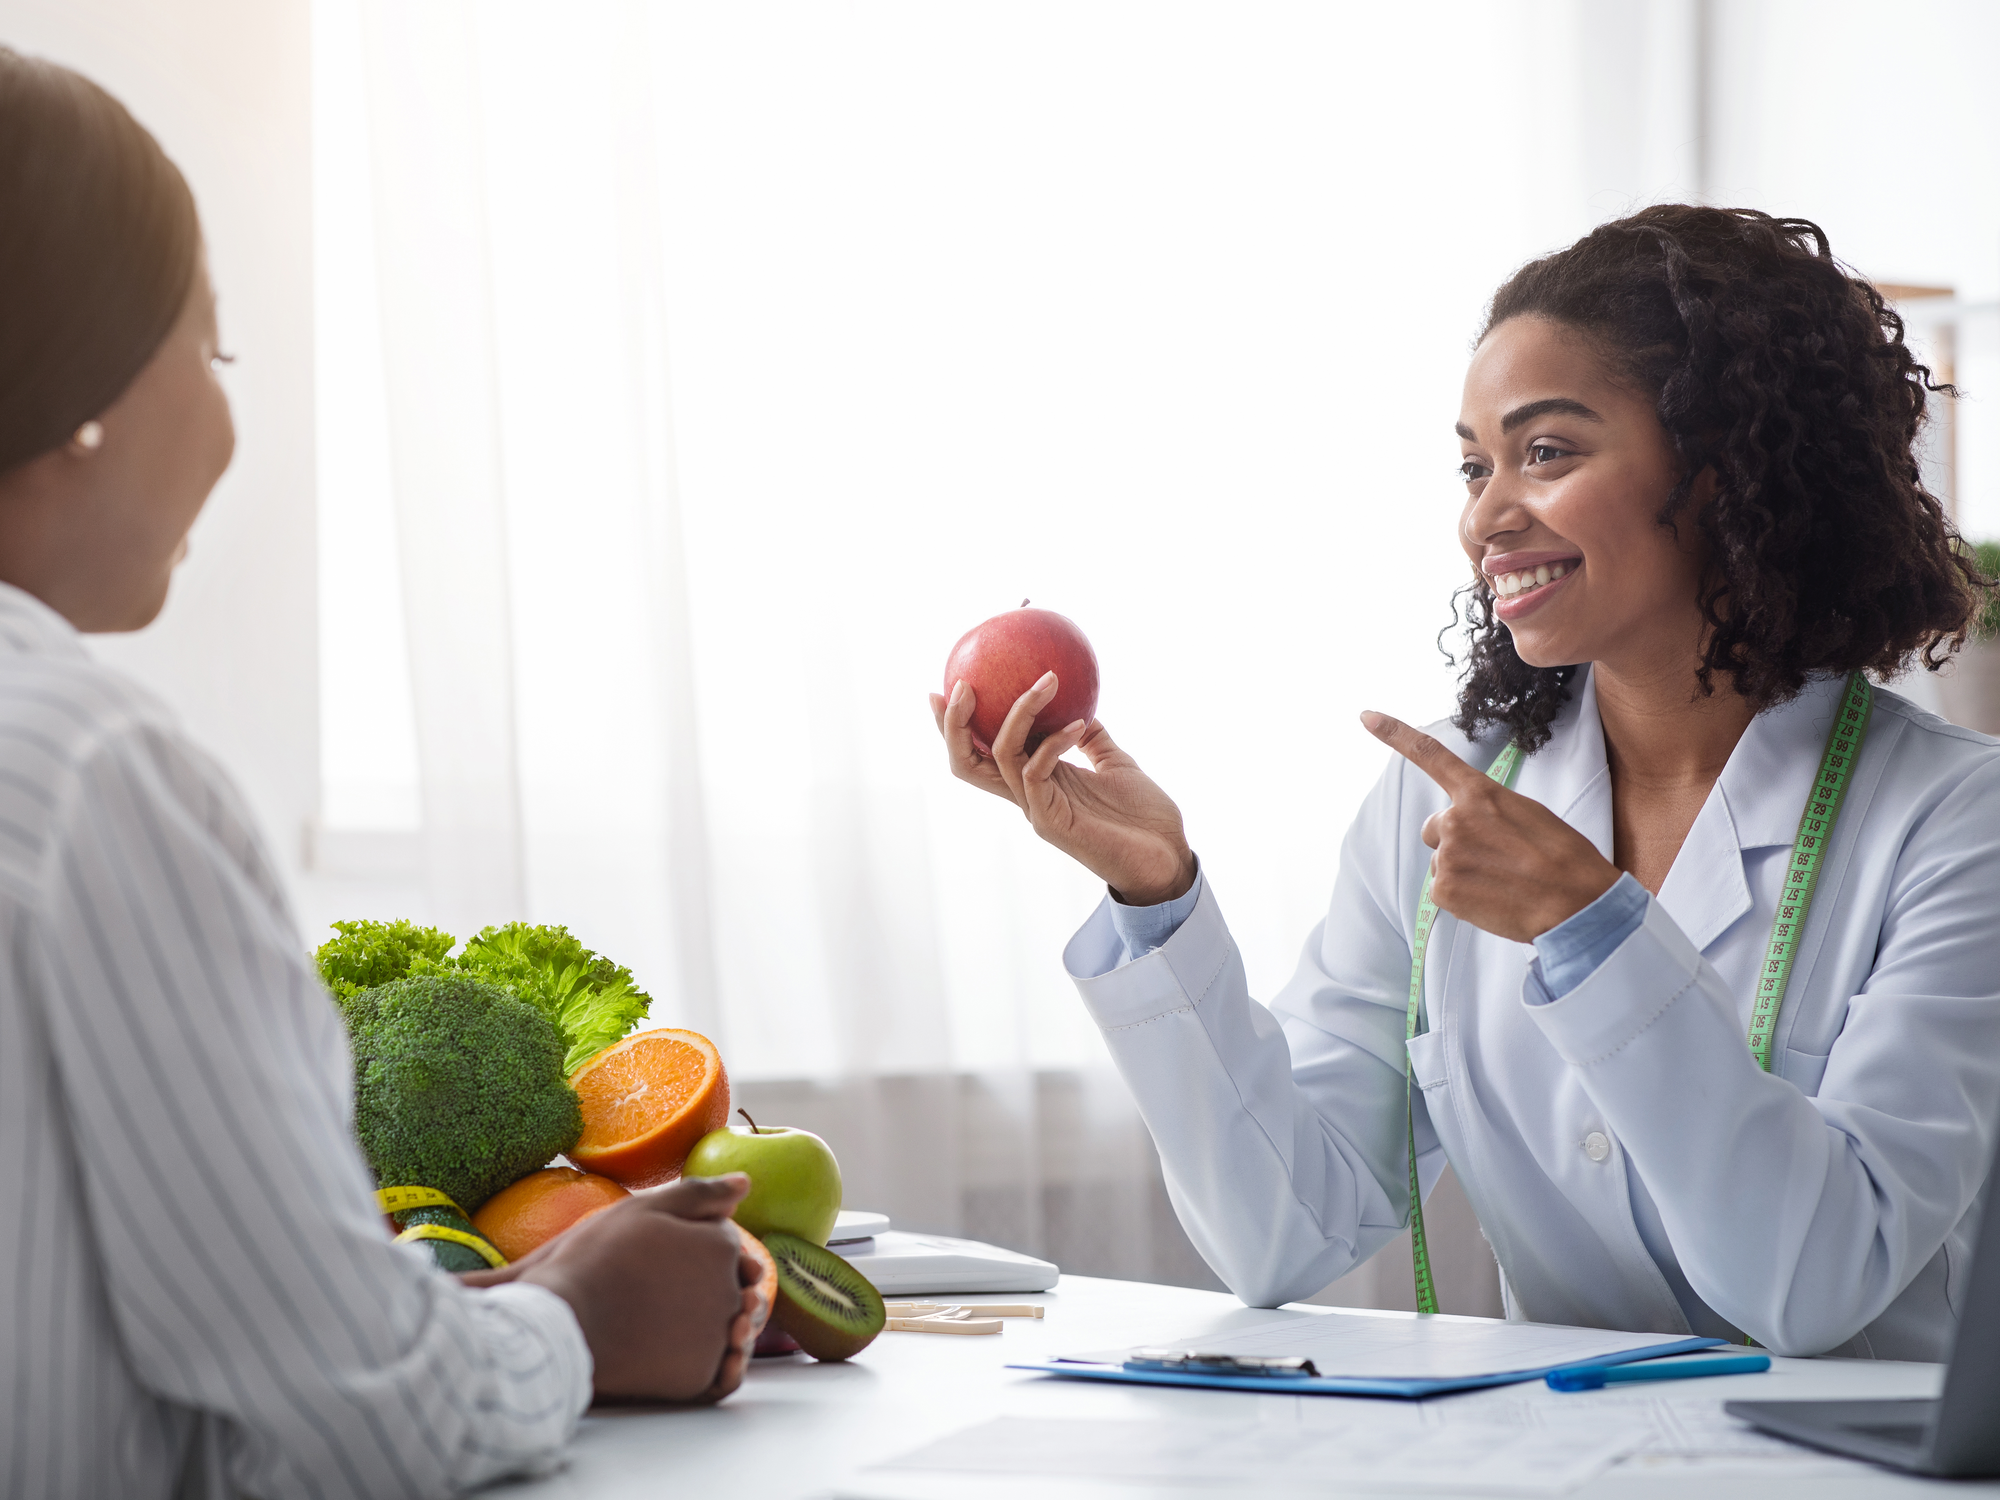 Benefits of Nutrition Counseling